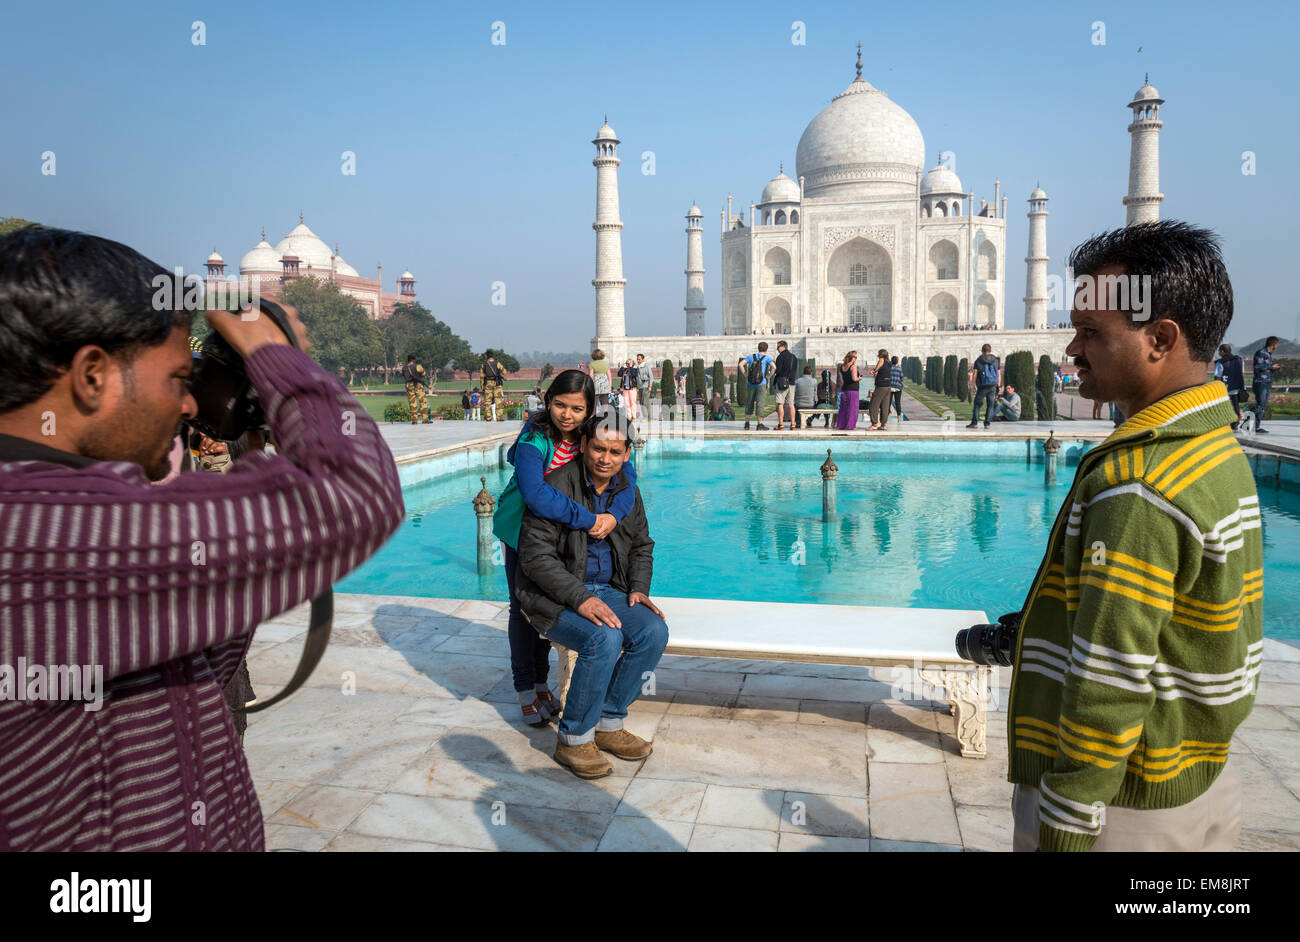 A young Indian couple being photographed in front of The Taj Mahal, Agra, India - Stock Image